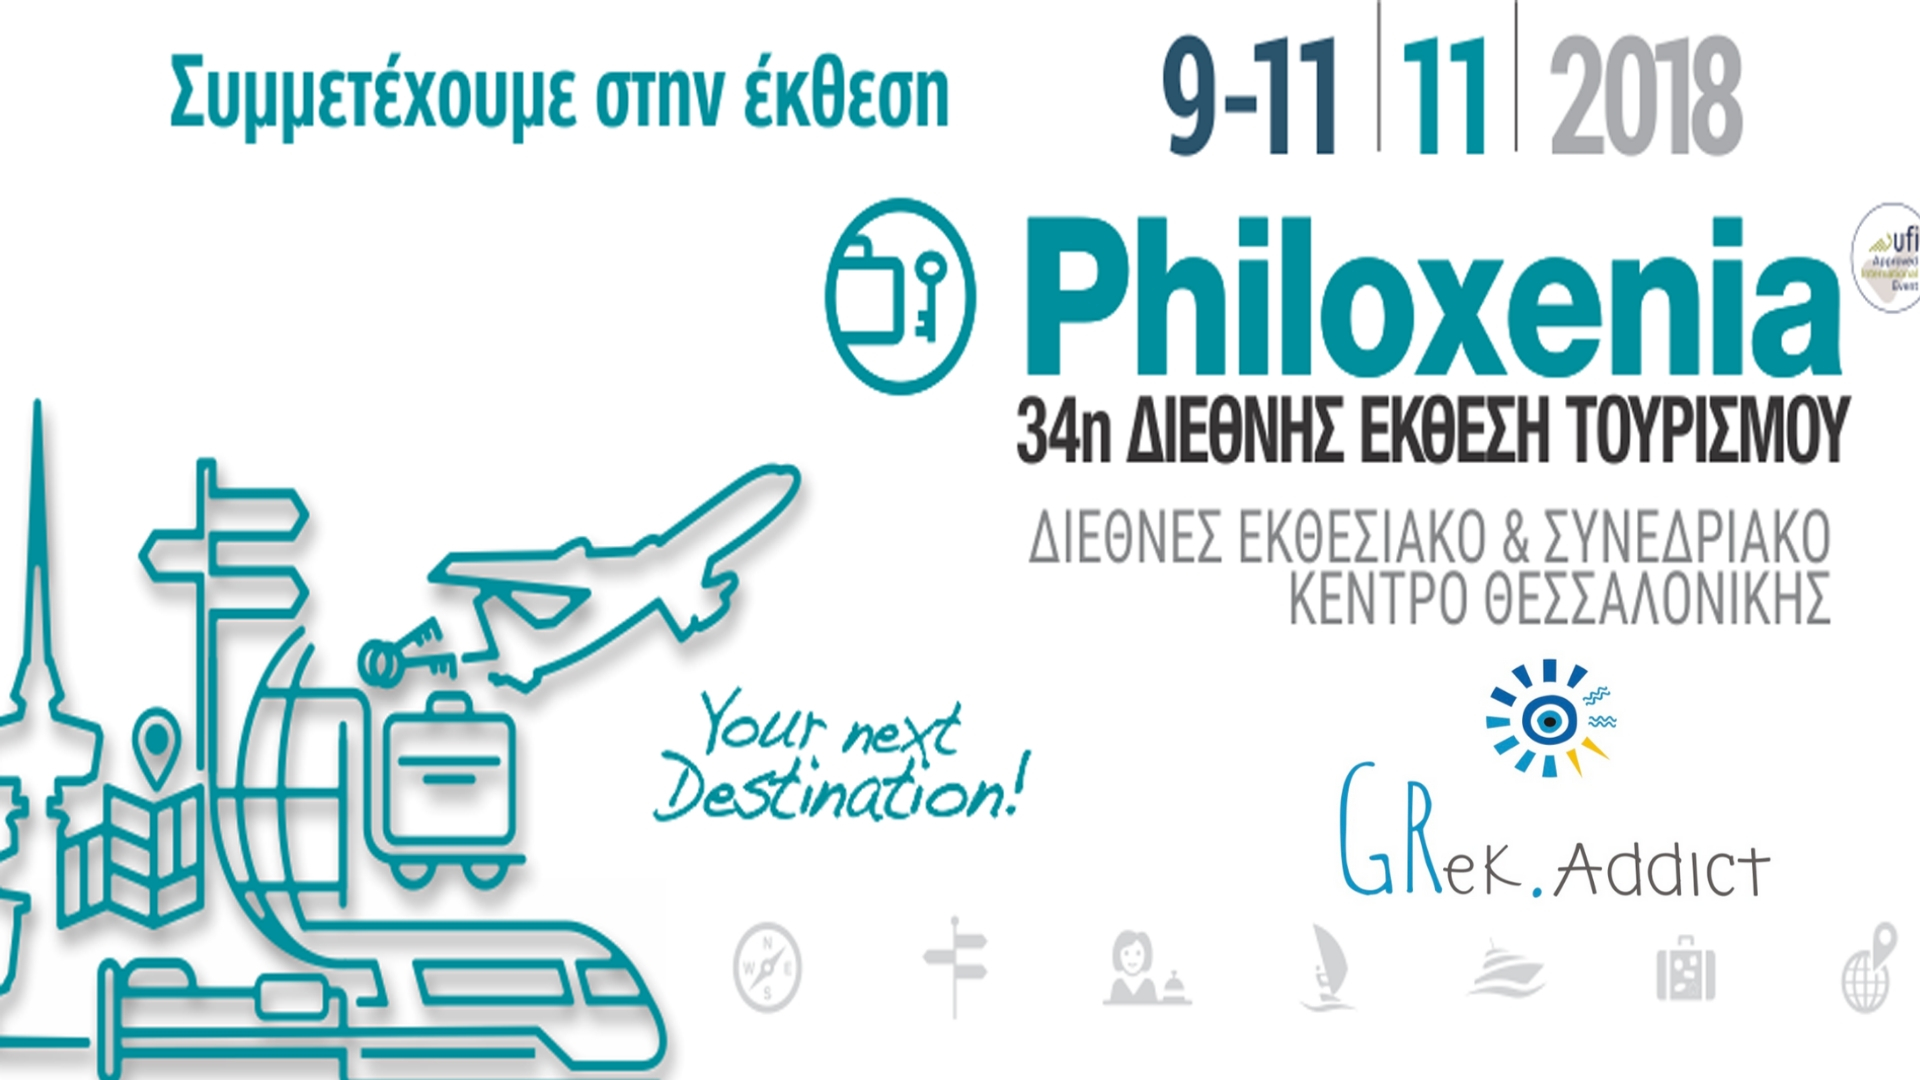 Grekaddict at Philoxenia